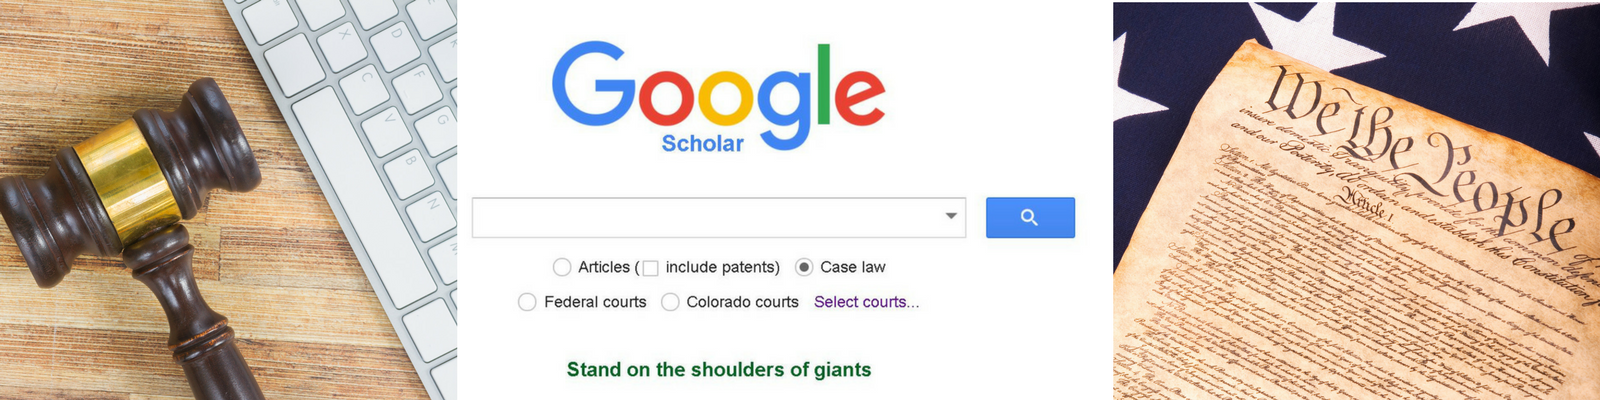 search case law